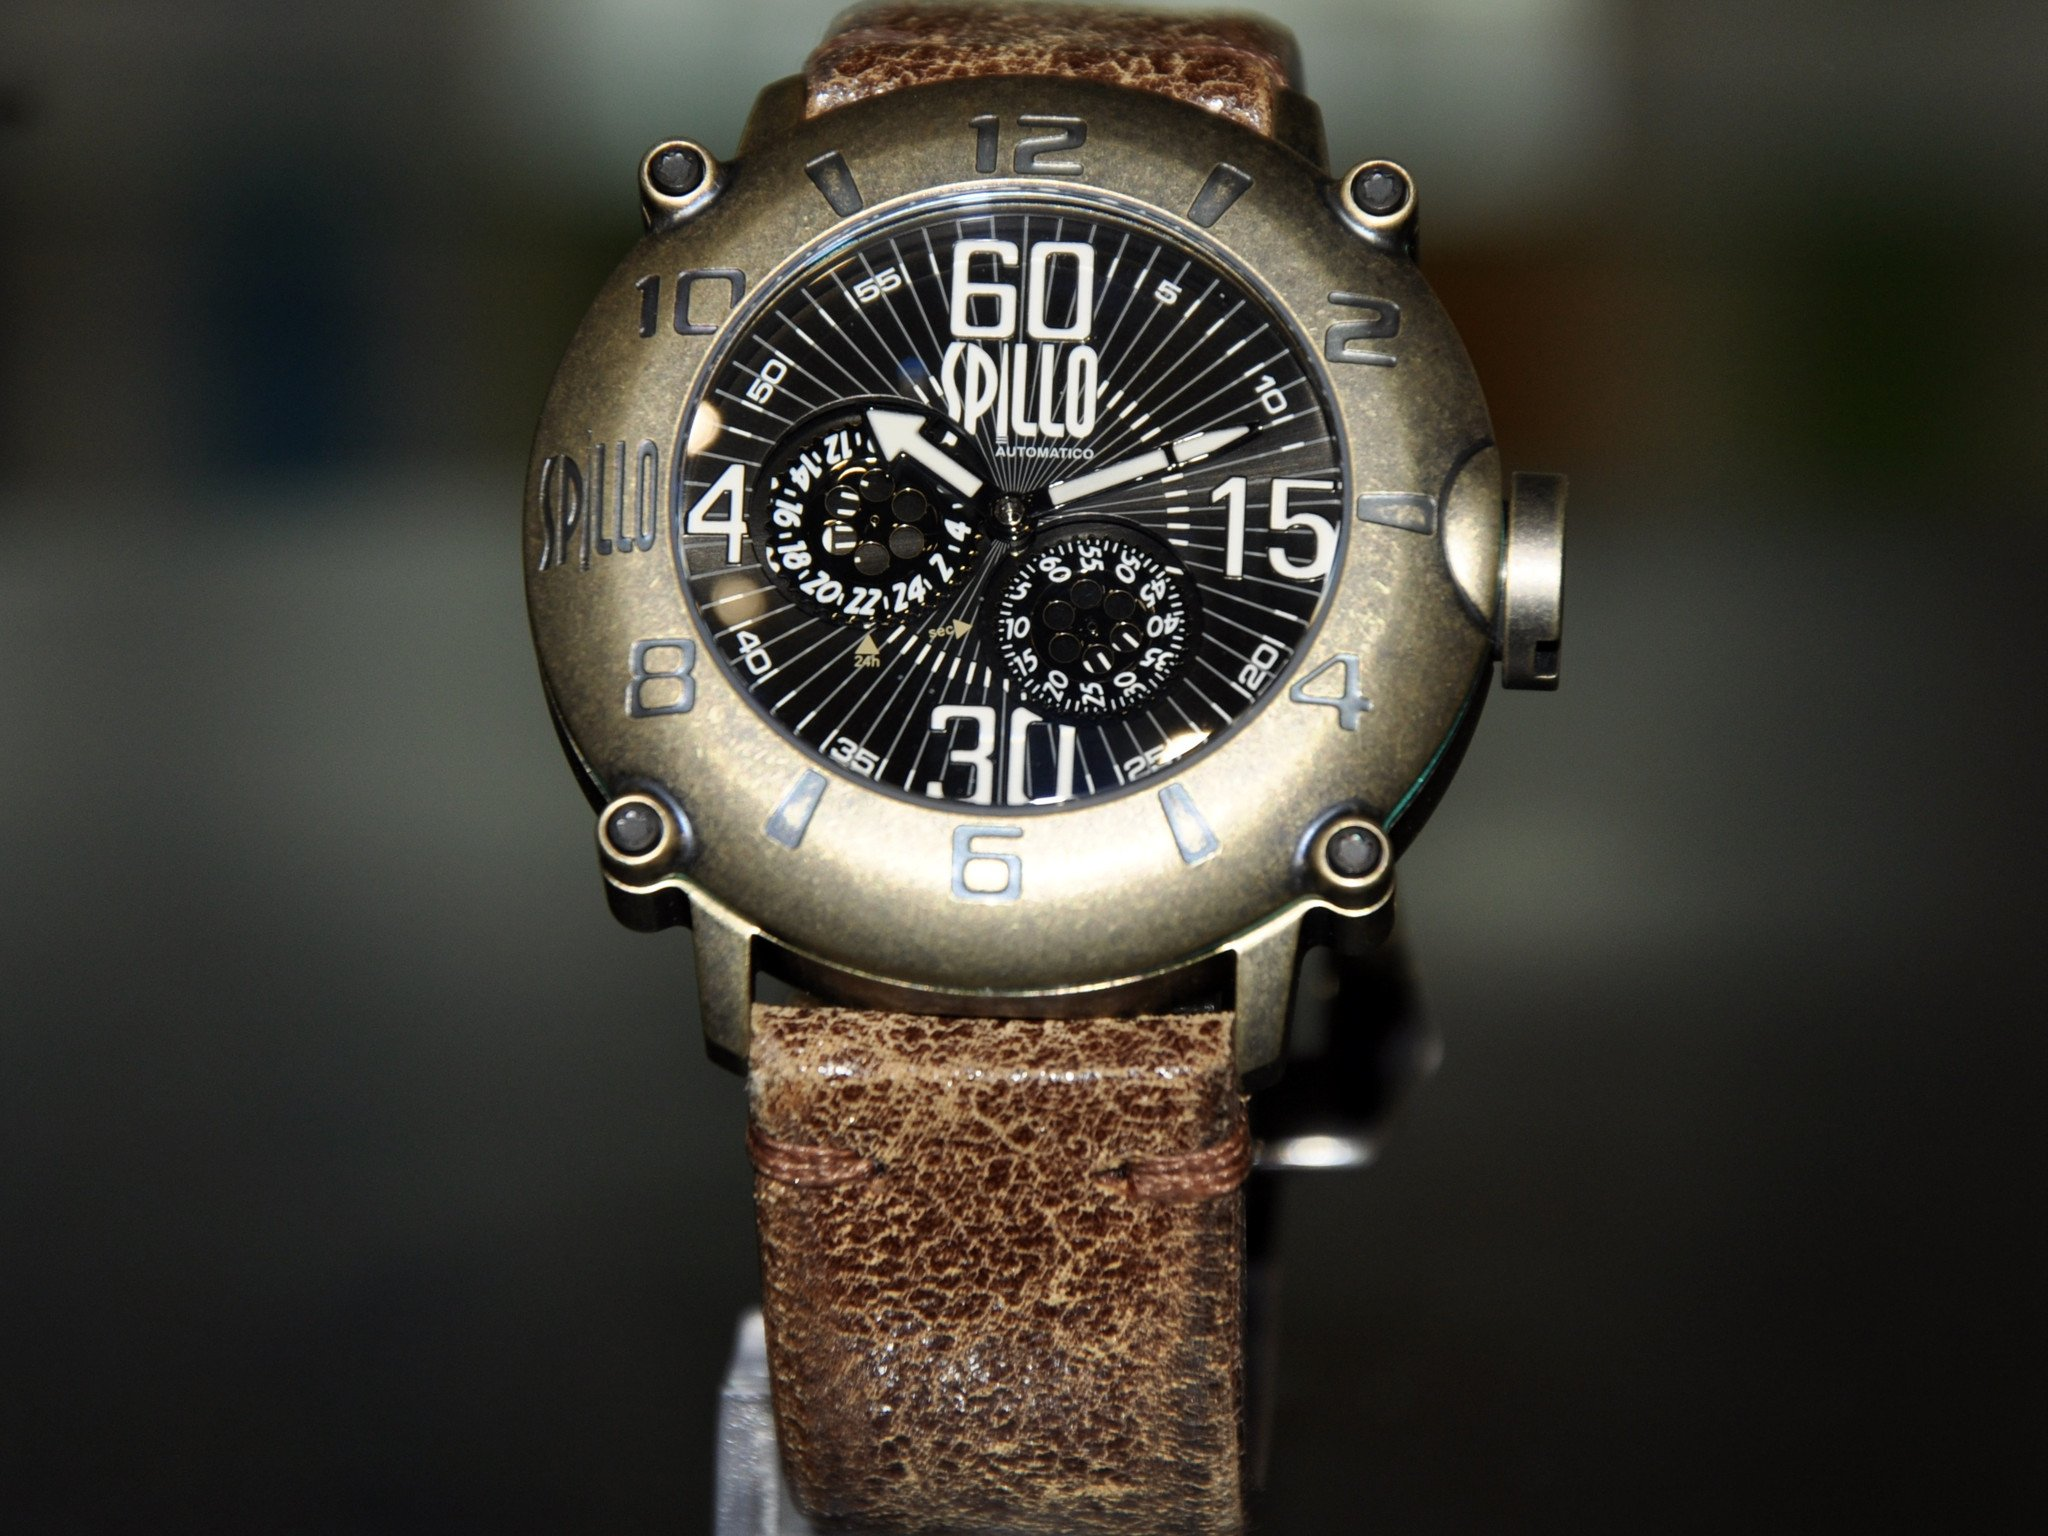 Spillo Outlaw/ Bronze And White